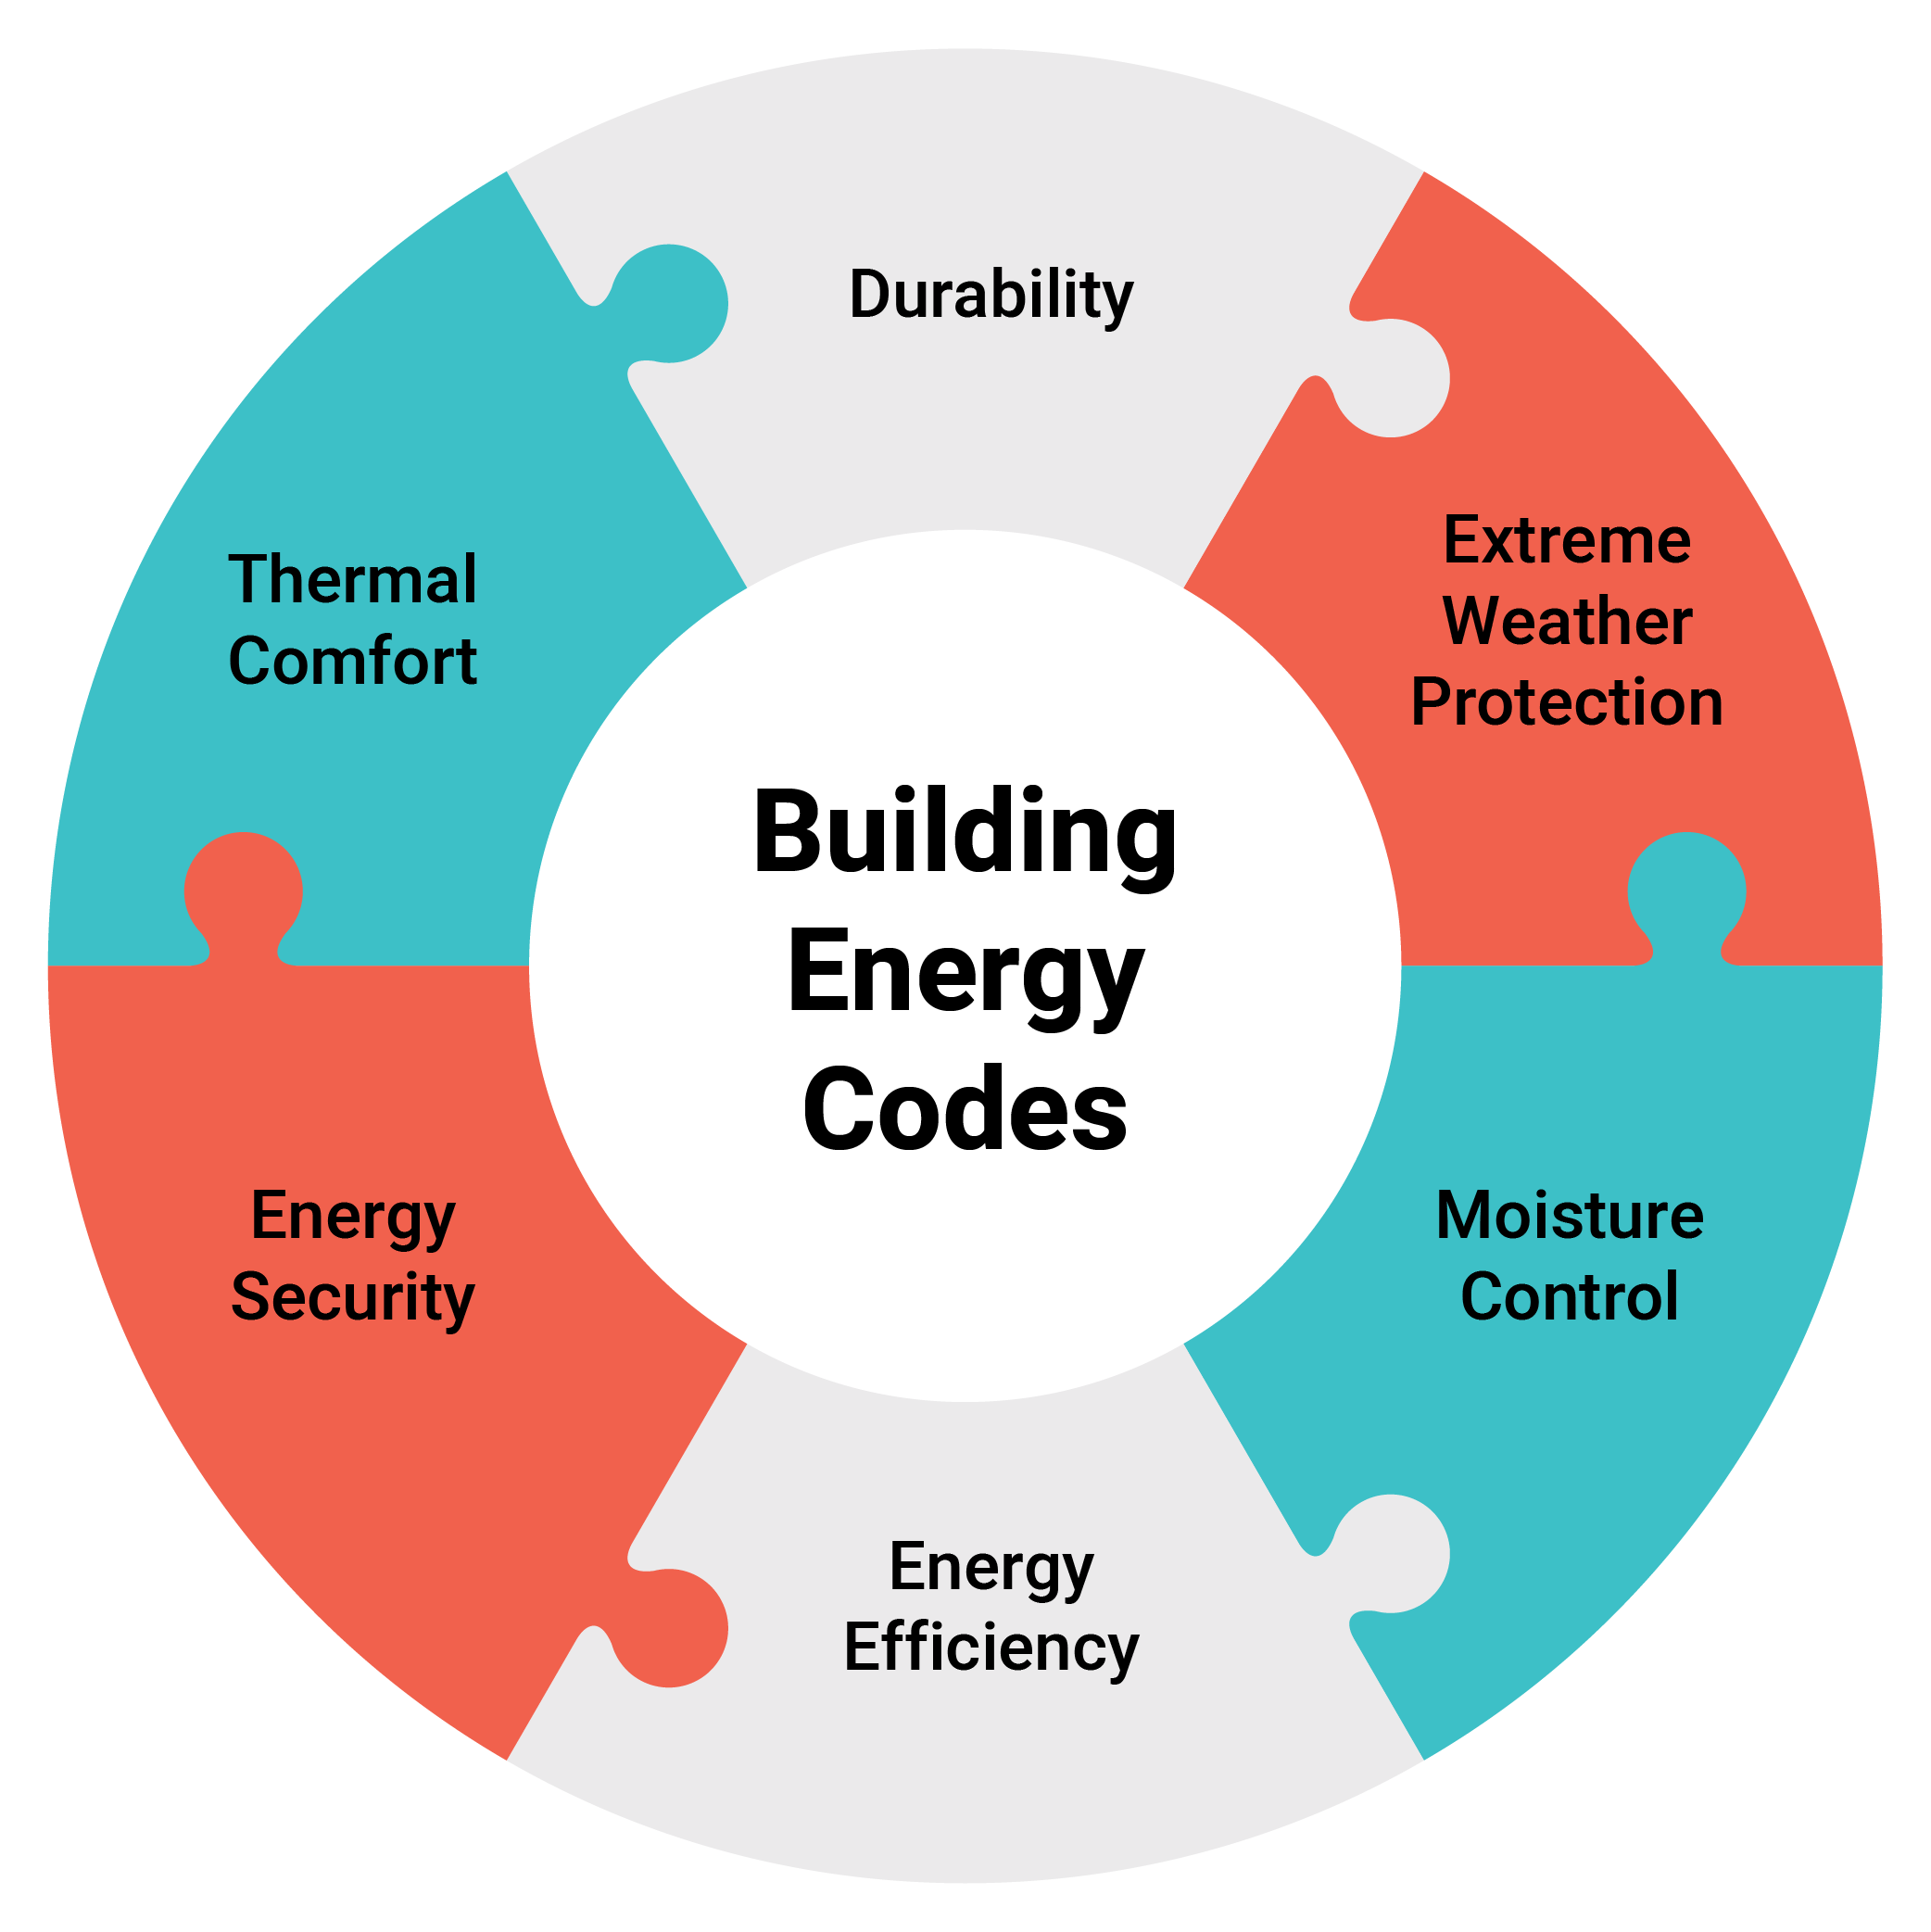 Why are building energy codes important now?